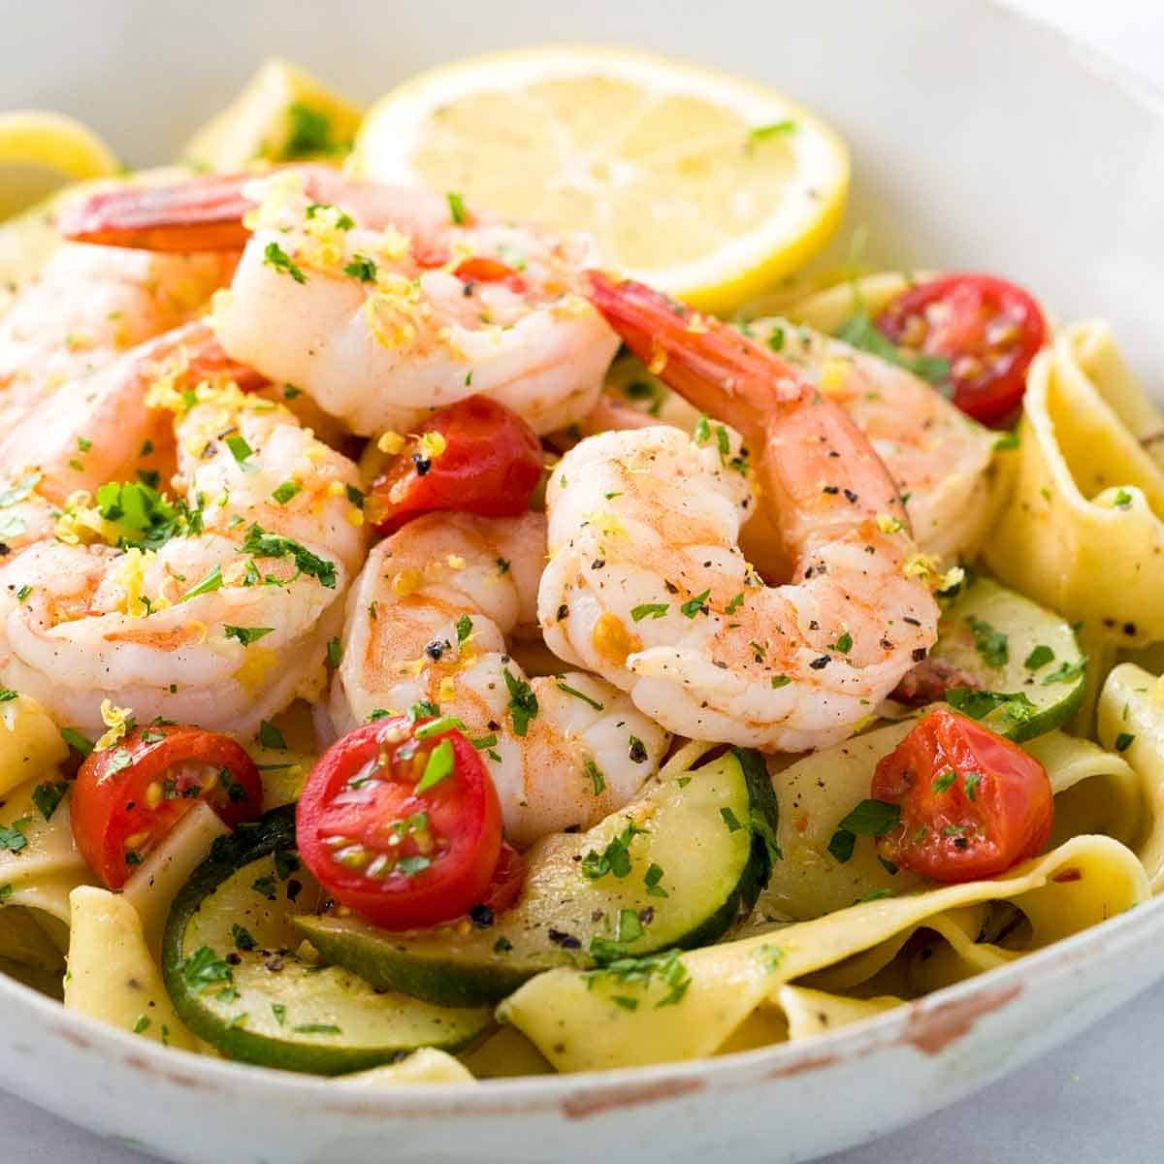 Shrimp Pasta with Lemon Garlic Sauce - Recipes Pasta And Shrimp